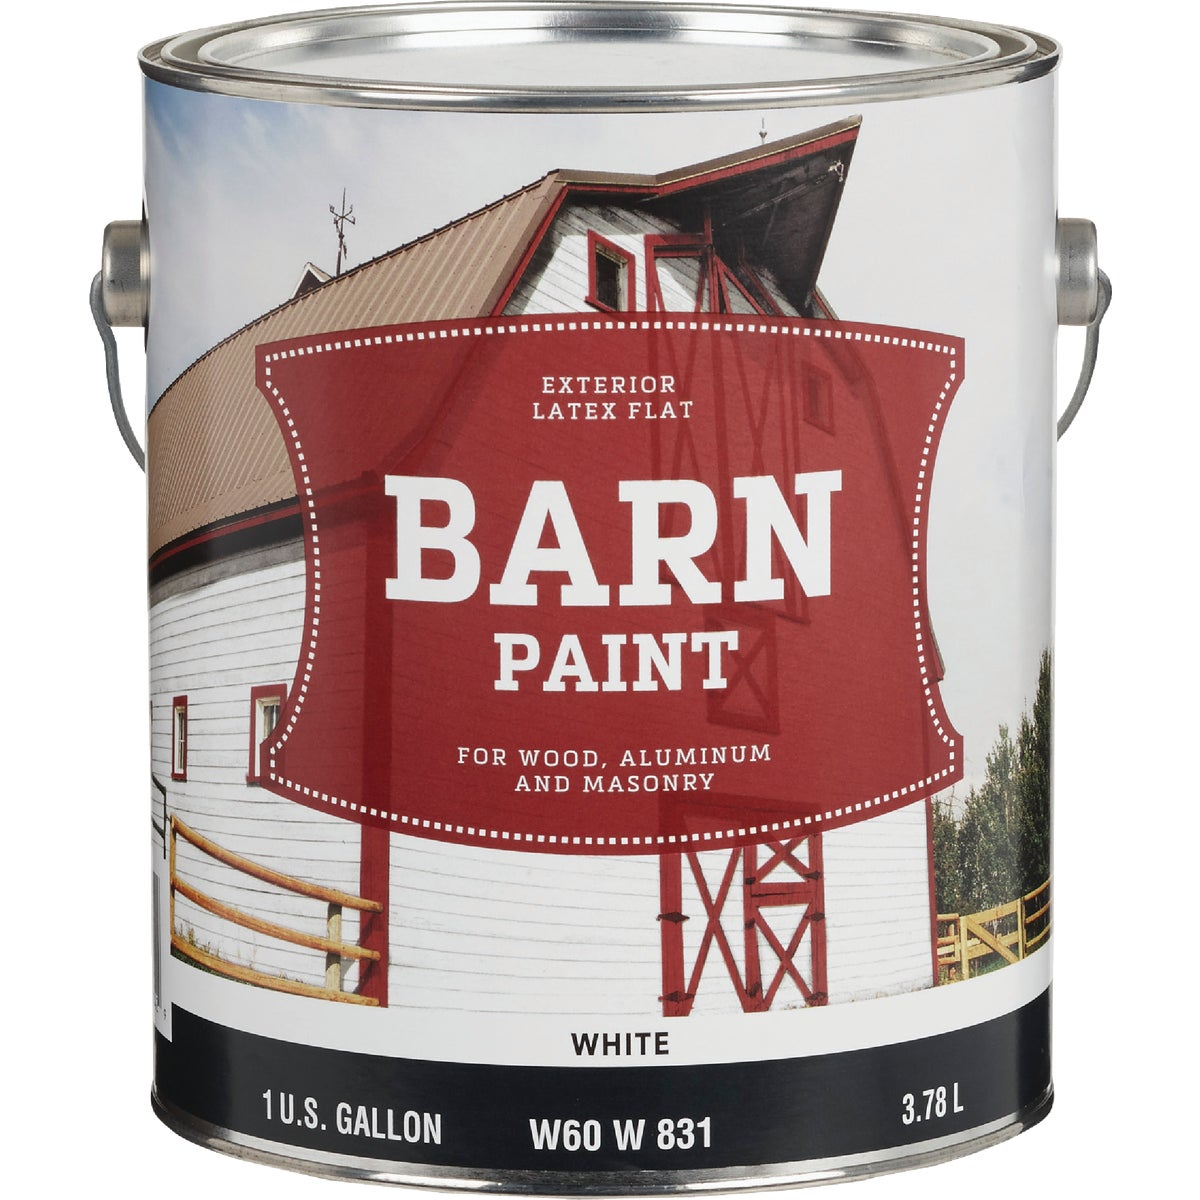 FLAT LTX WHT BARN PAINT - W60W00831-16 by Do it Best